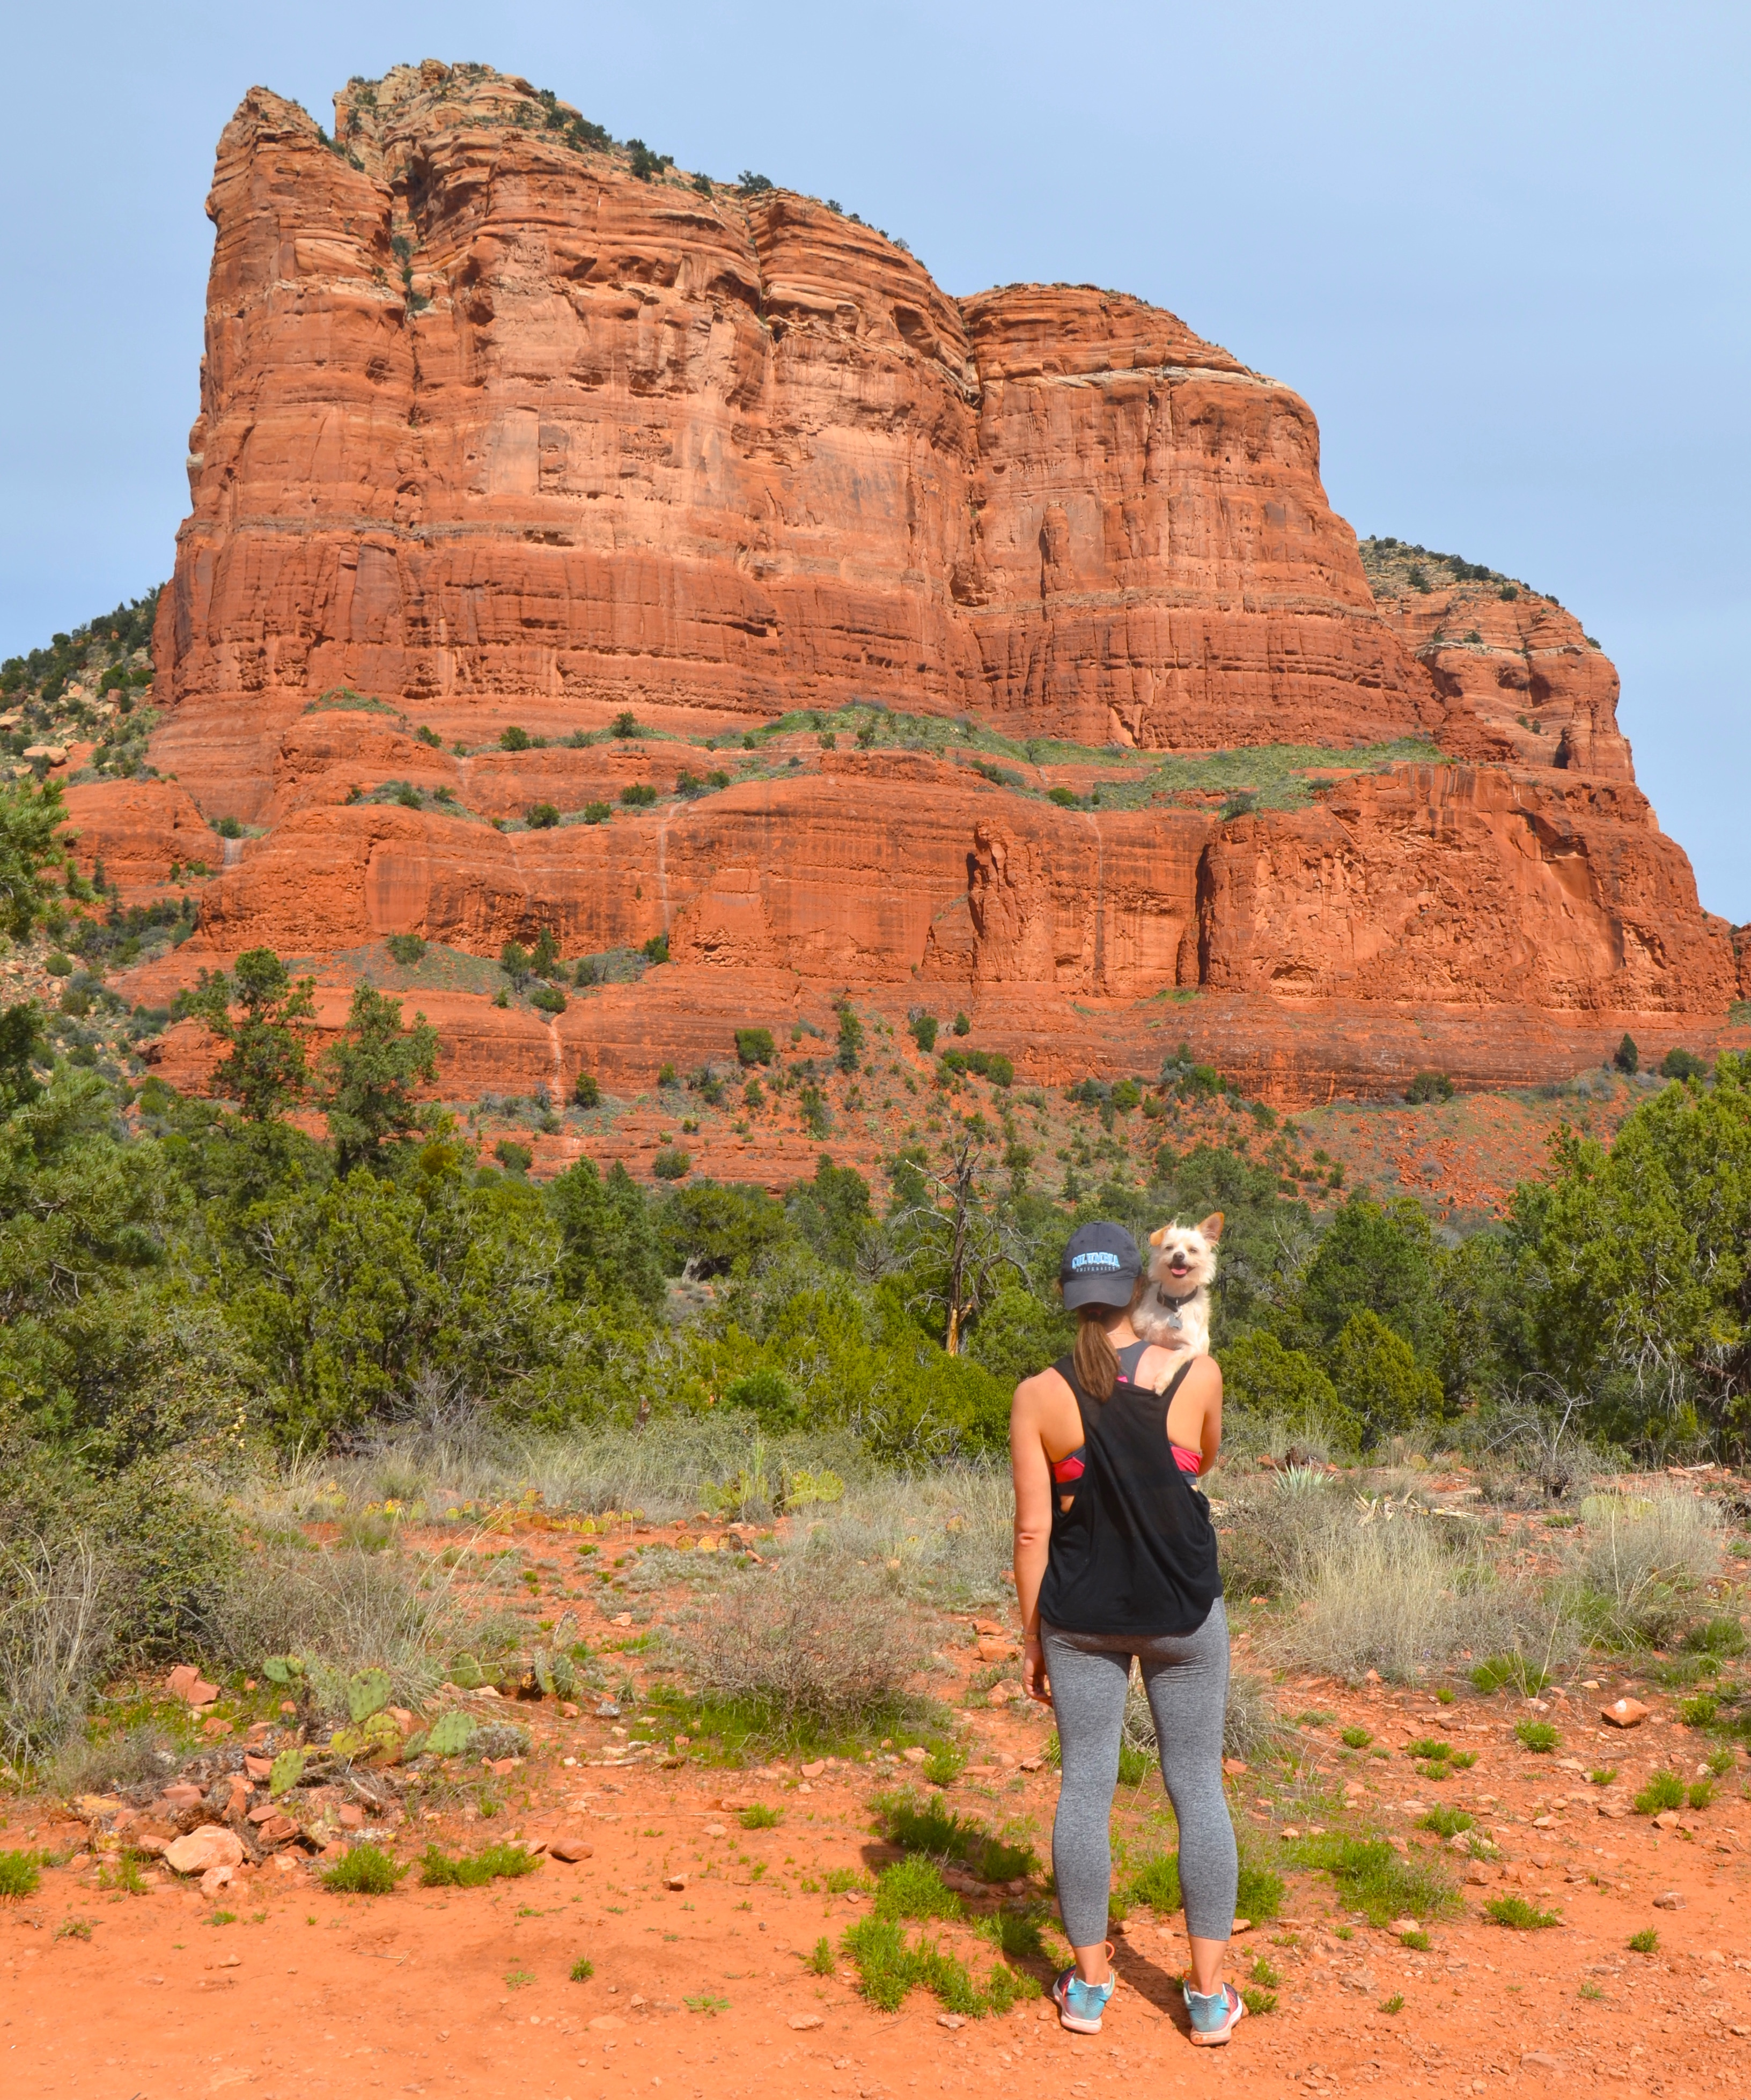 Sedona: Thoughts from a Cranky Traveler